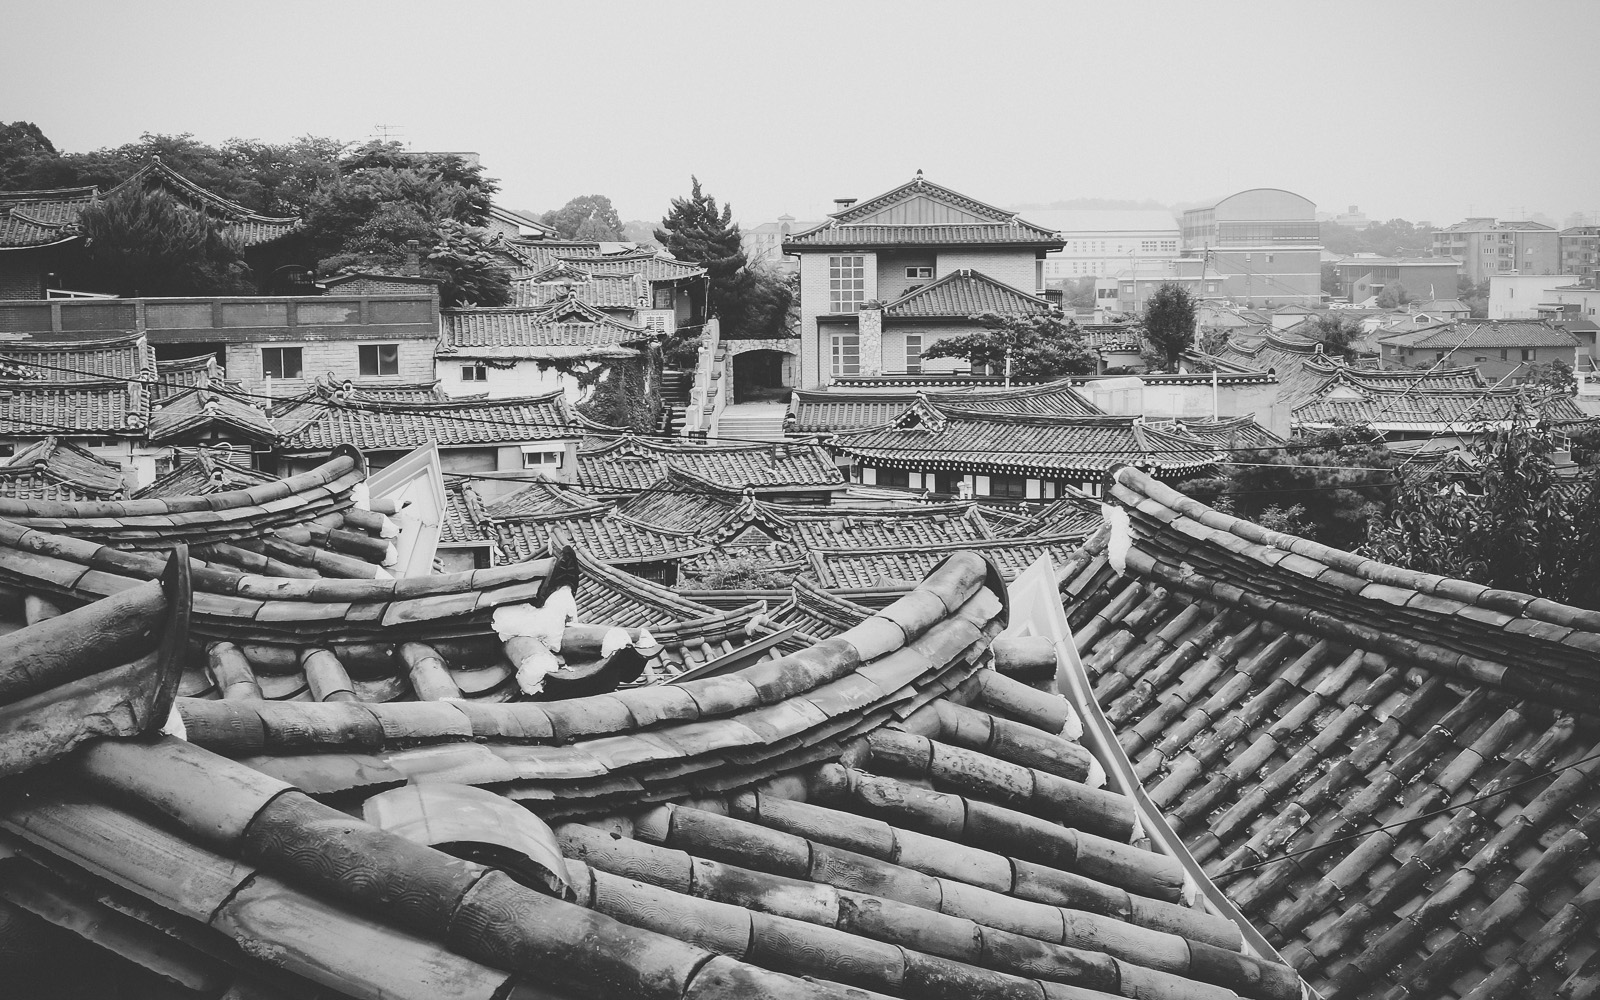 RKJ-0162Bukchon Village rooftops, South Korea